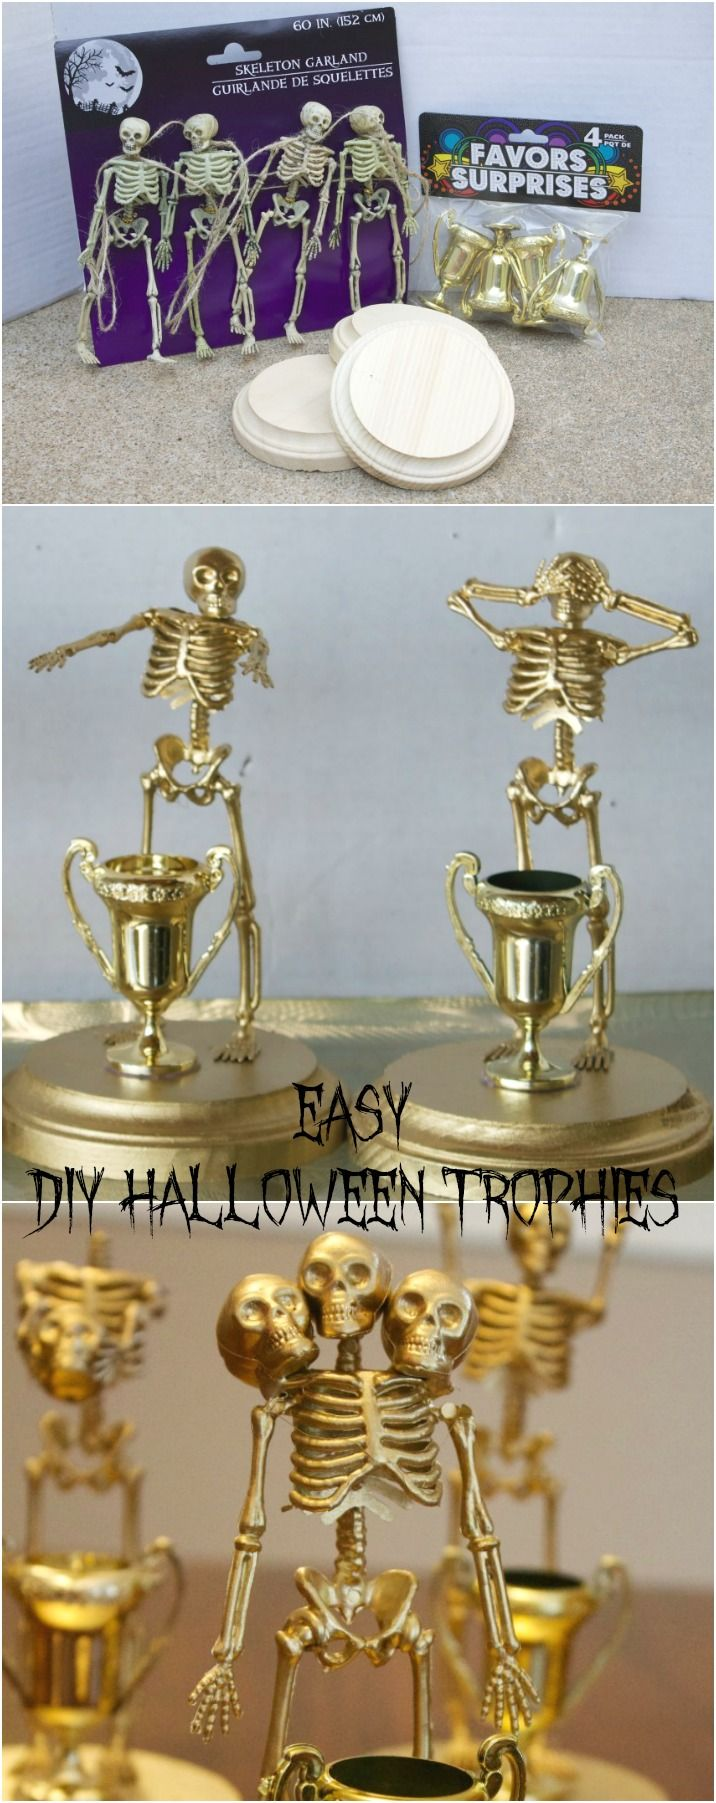 25 DIY Halloween Decorating Ideas for Kids on a Budget | Toilet ...